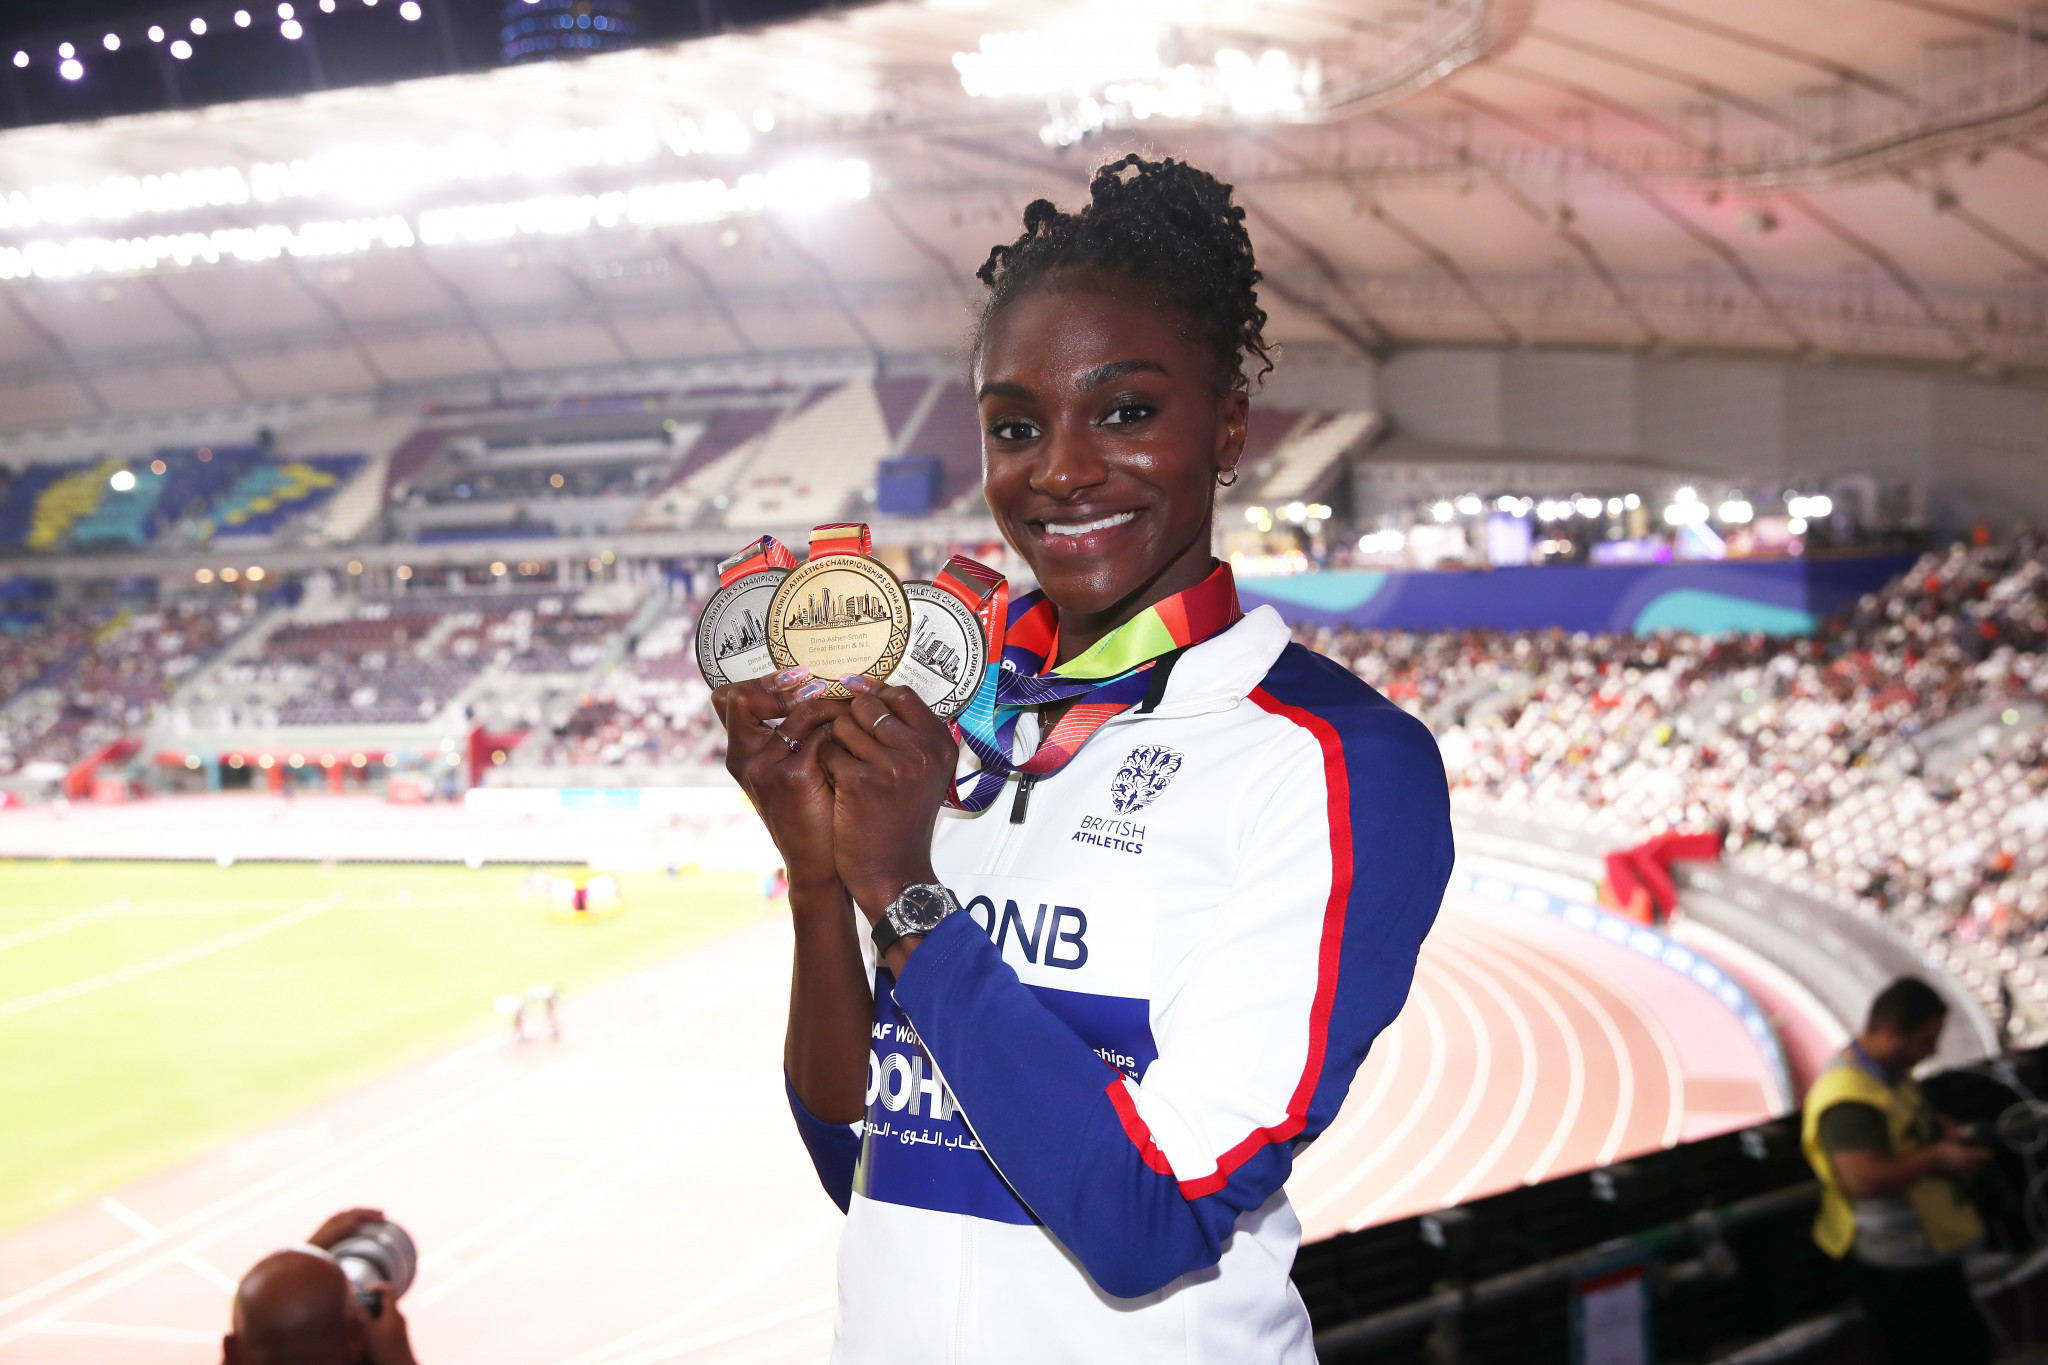 Sprint rivals Asher-Smith and Richardson united against IOC's Rule 50 ban on podium protests